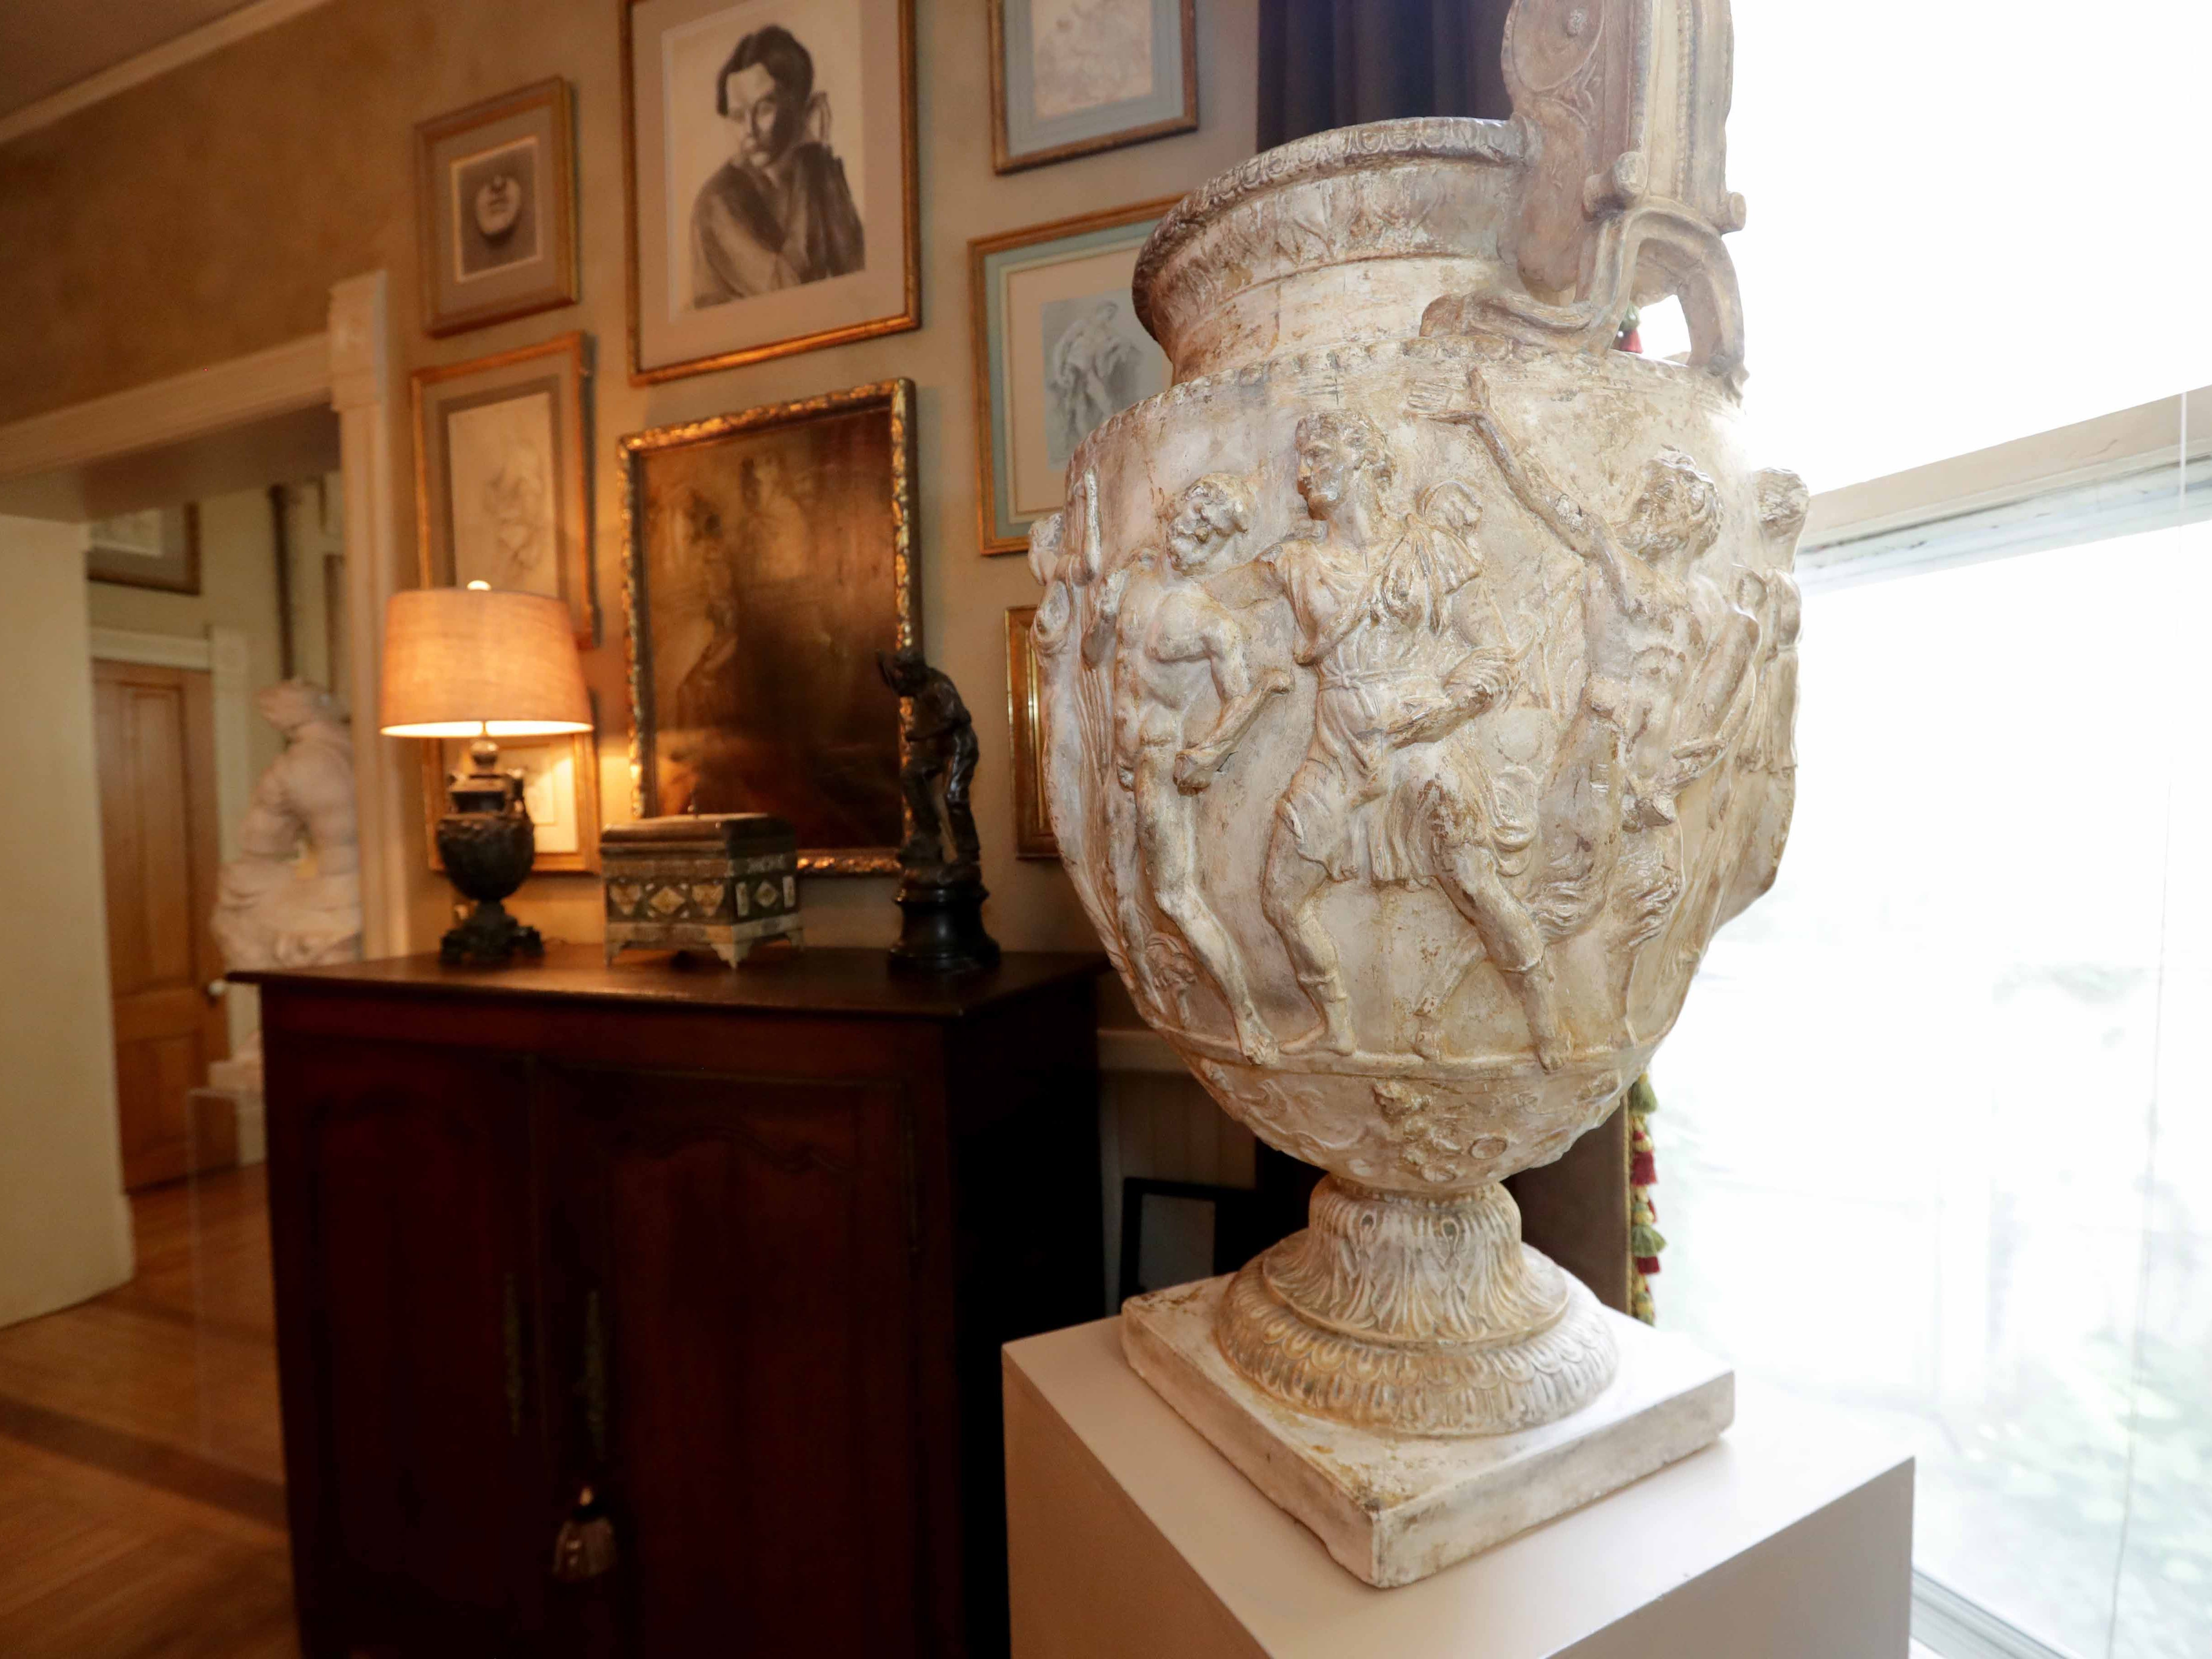 A large 19th-century vase in the dining room is a copy of a vase that discovered in ruins in a villa south of Rome.